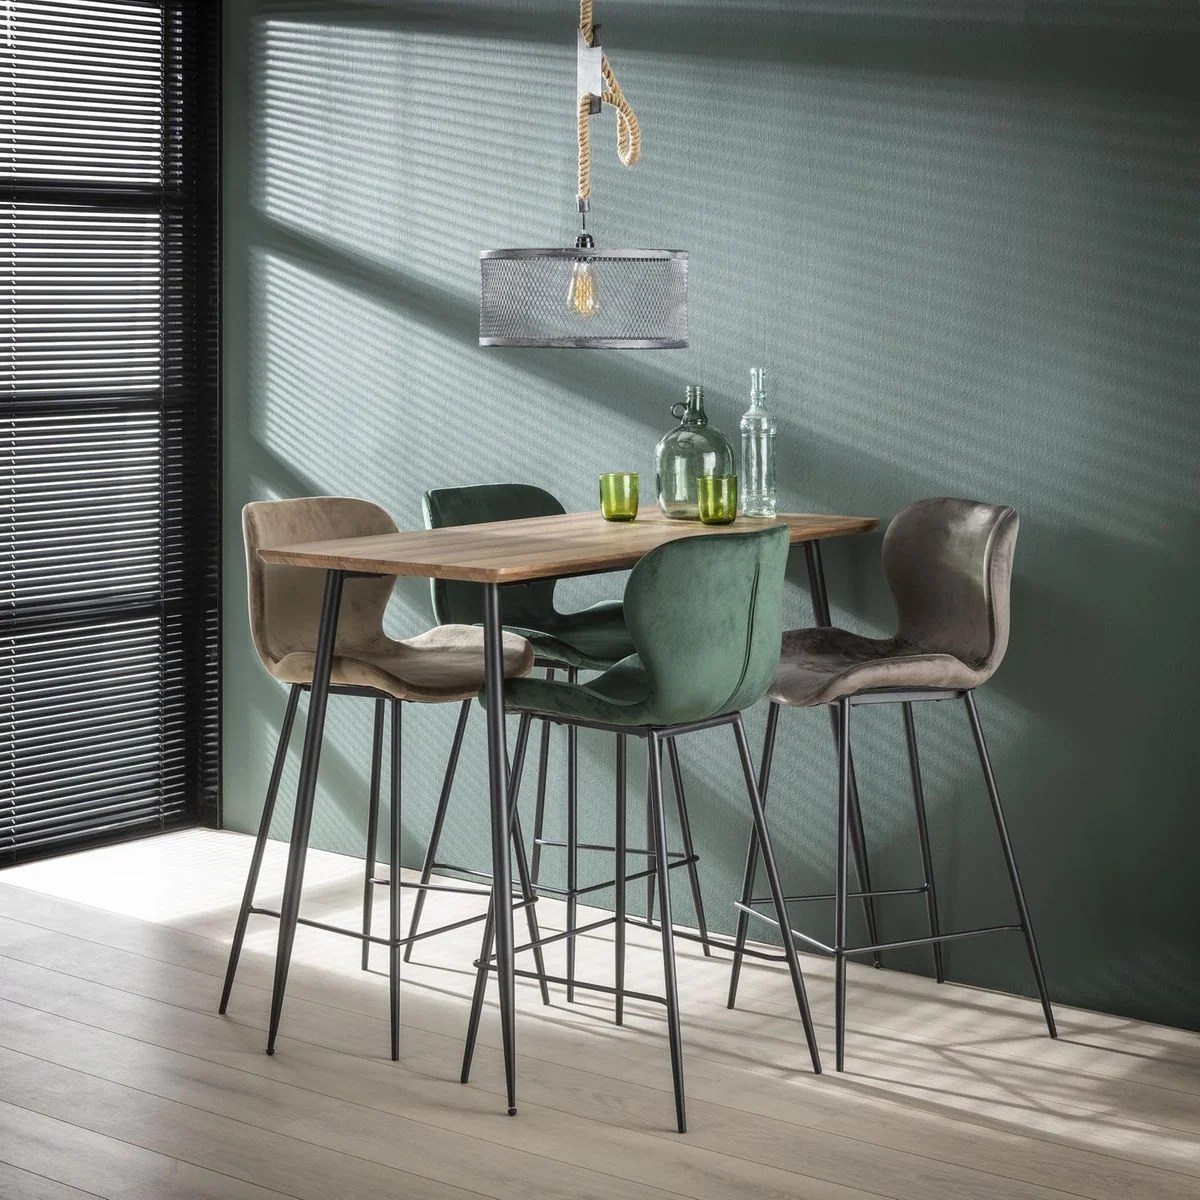 table haute de bar 4 personnes bois et metal style vintage contemporain 120cm helsinki